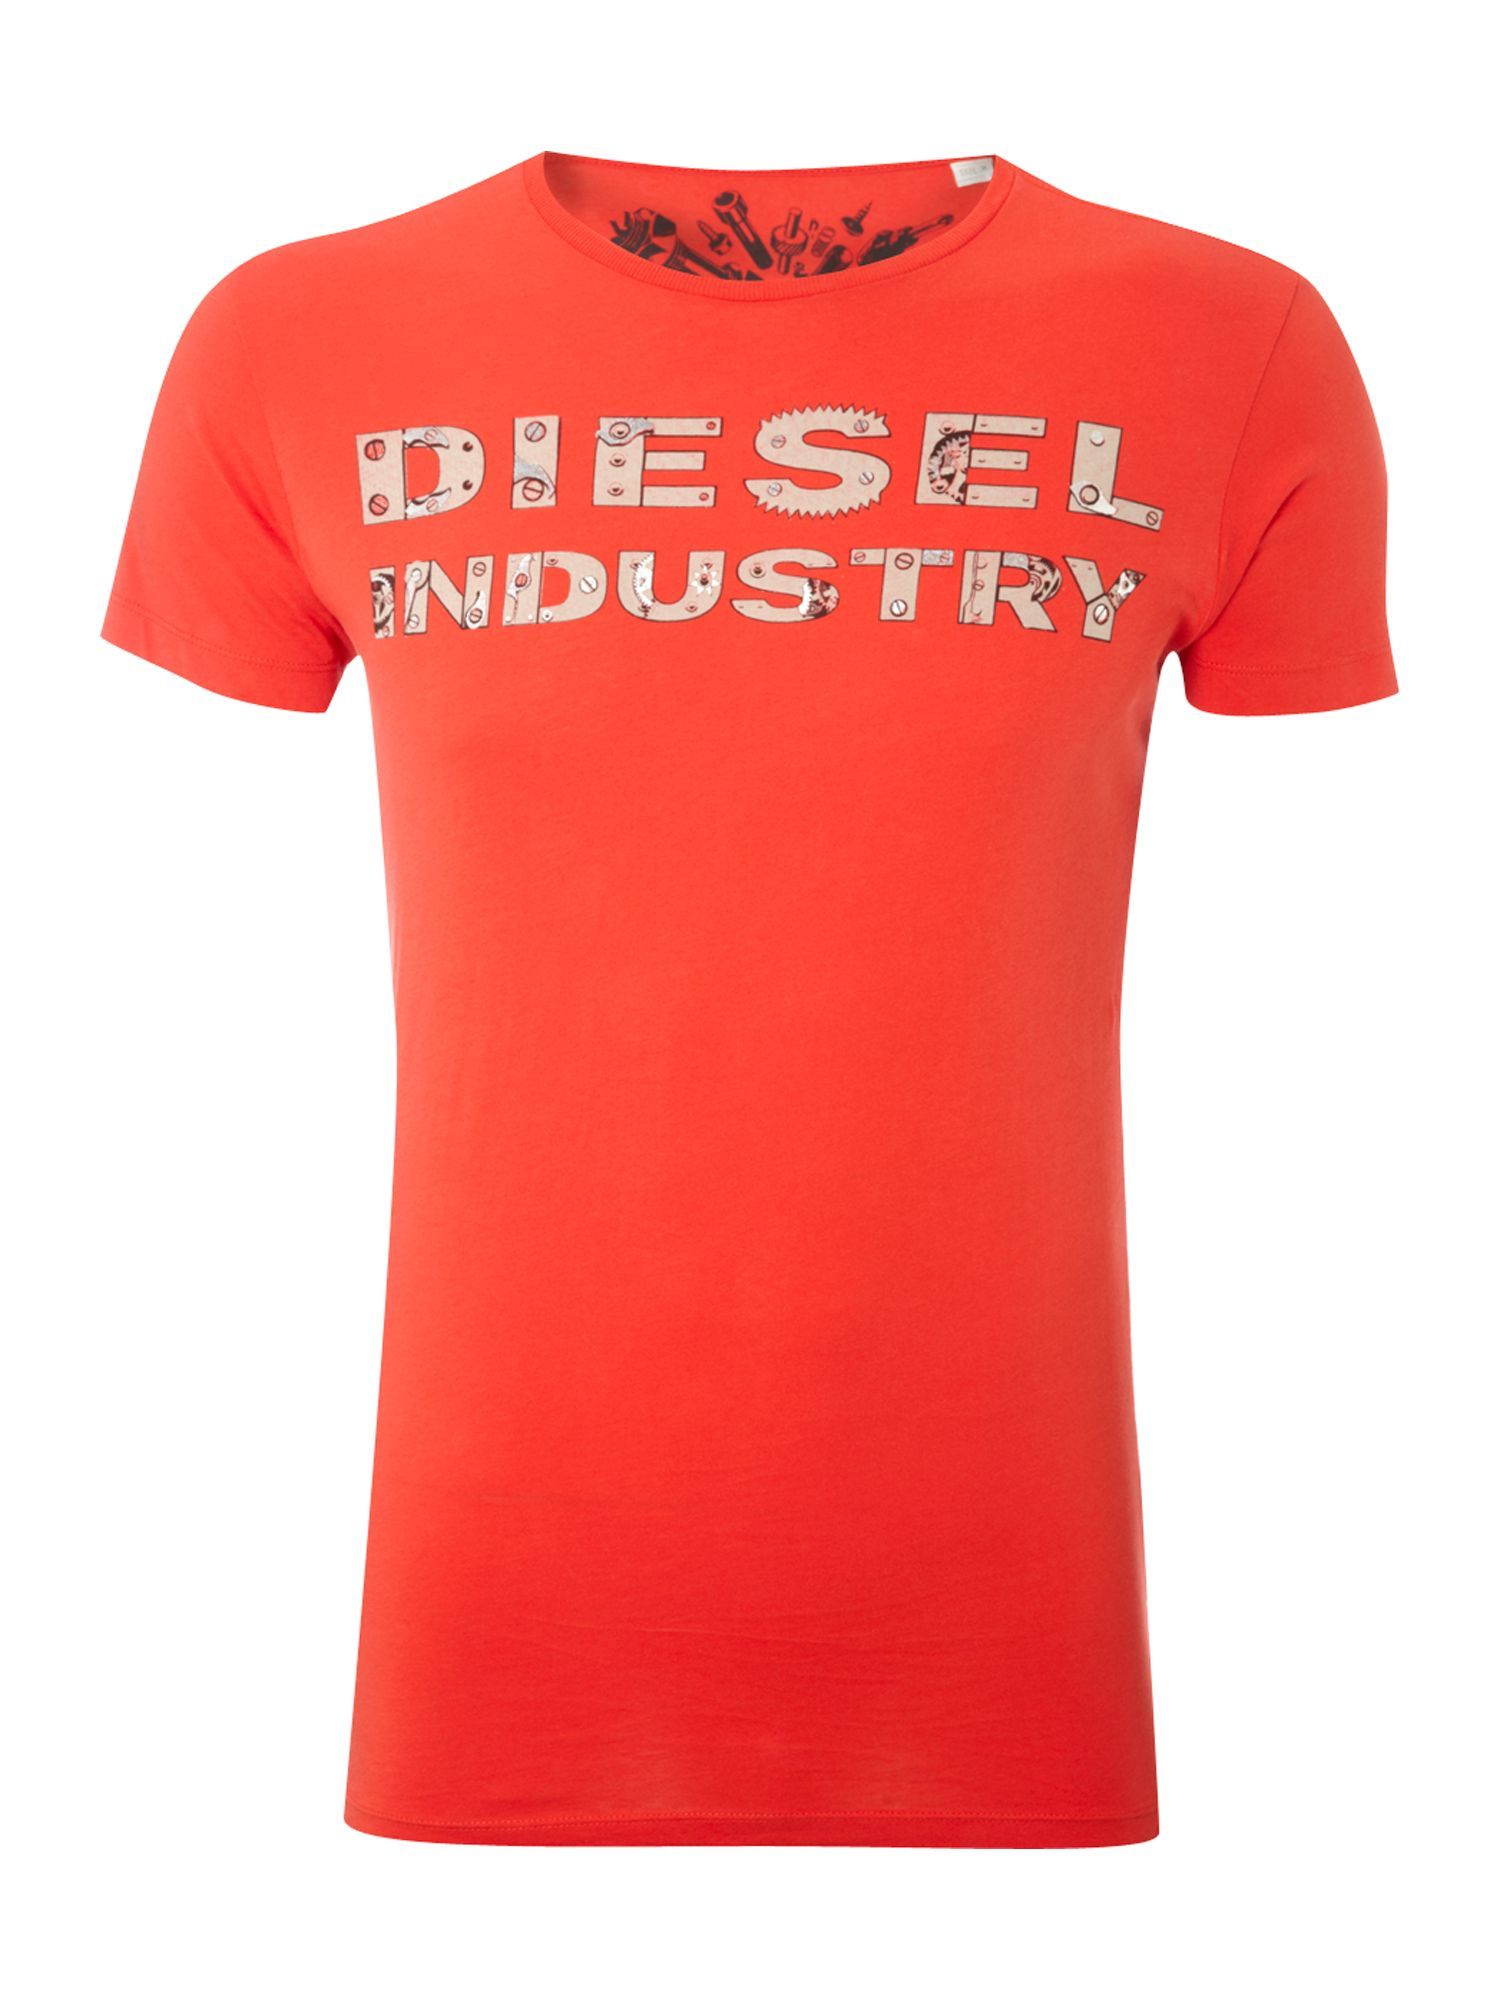 Diesel Mens Diesel Mens printed T-shirt, Red product image